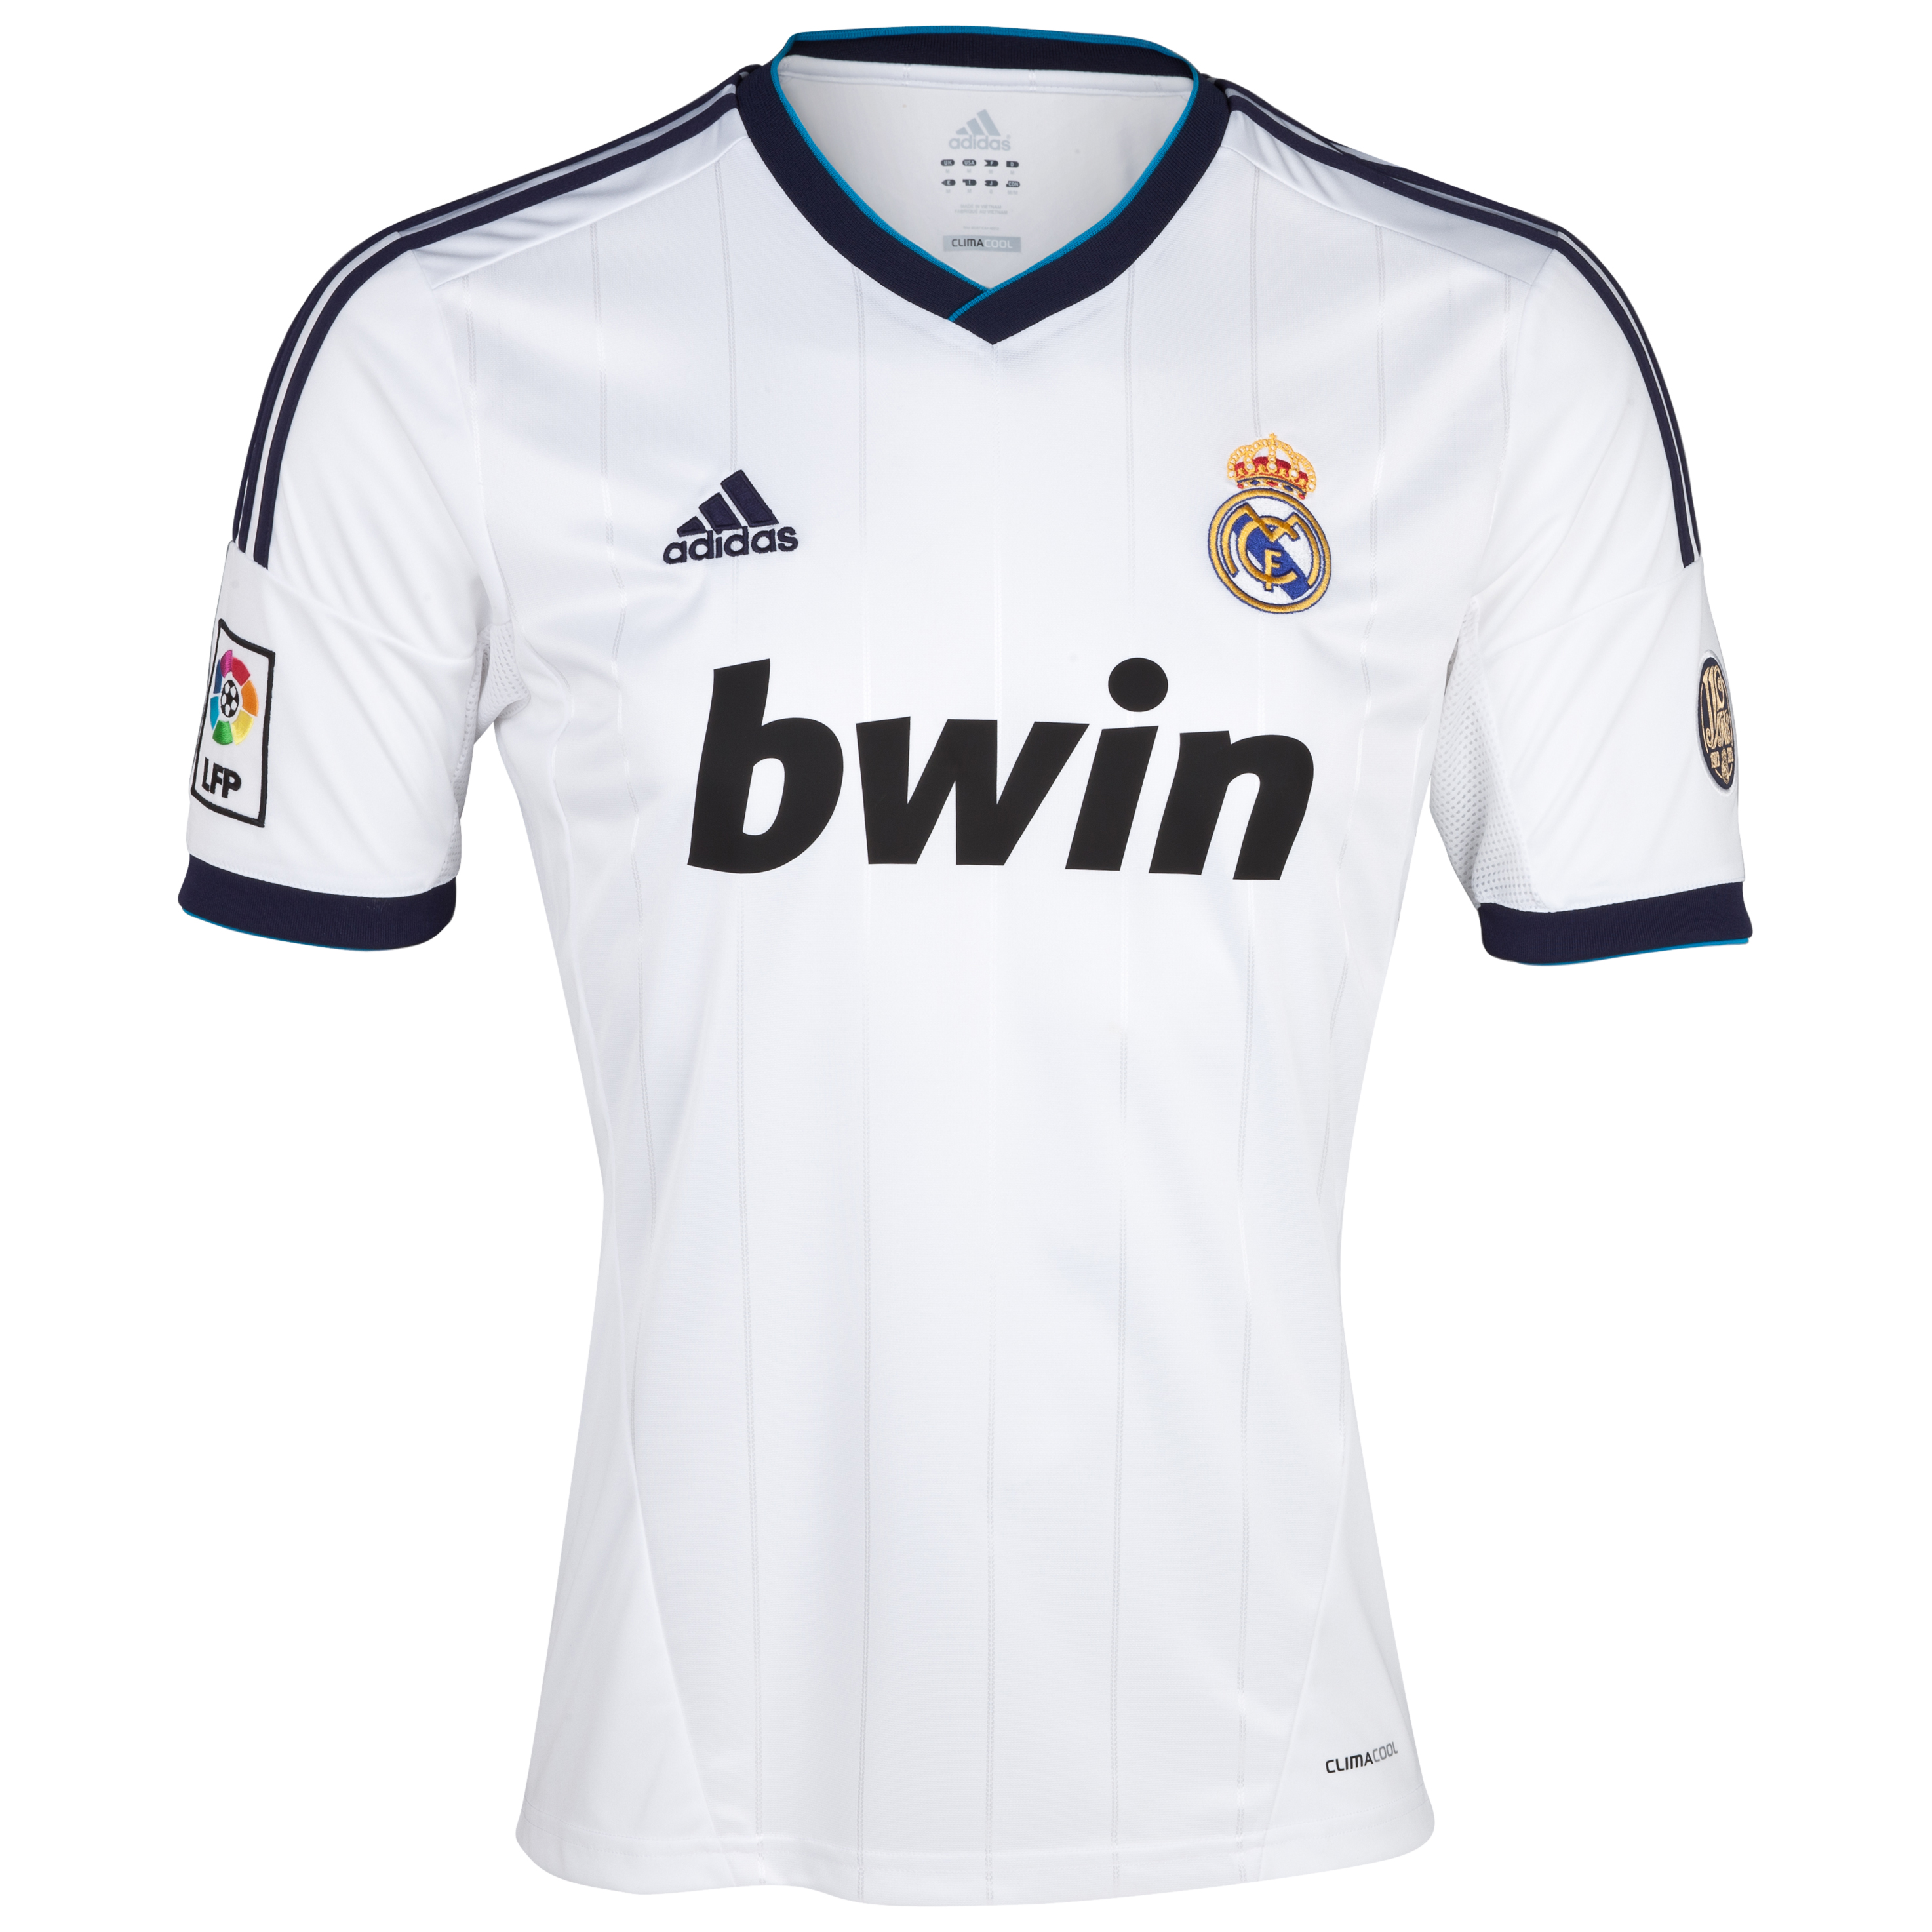 Buy Real Madrid Home Kit 2012/13 Youths